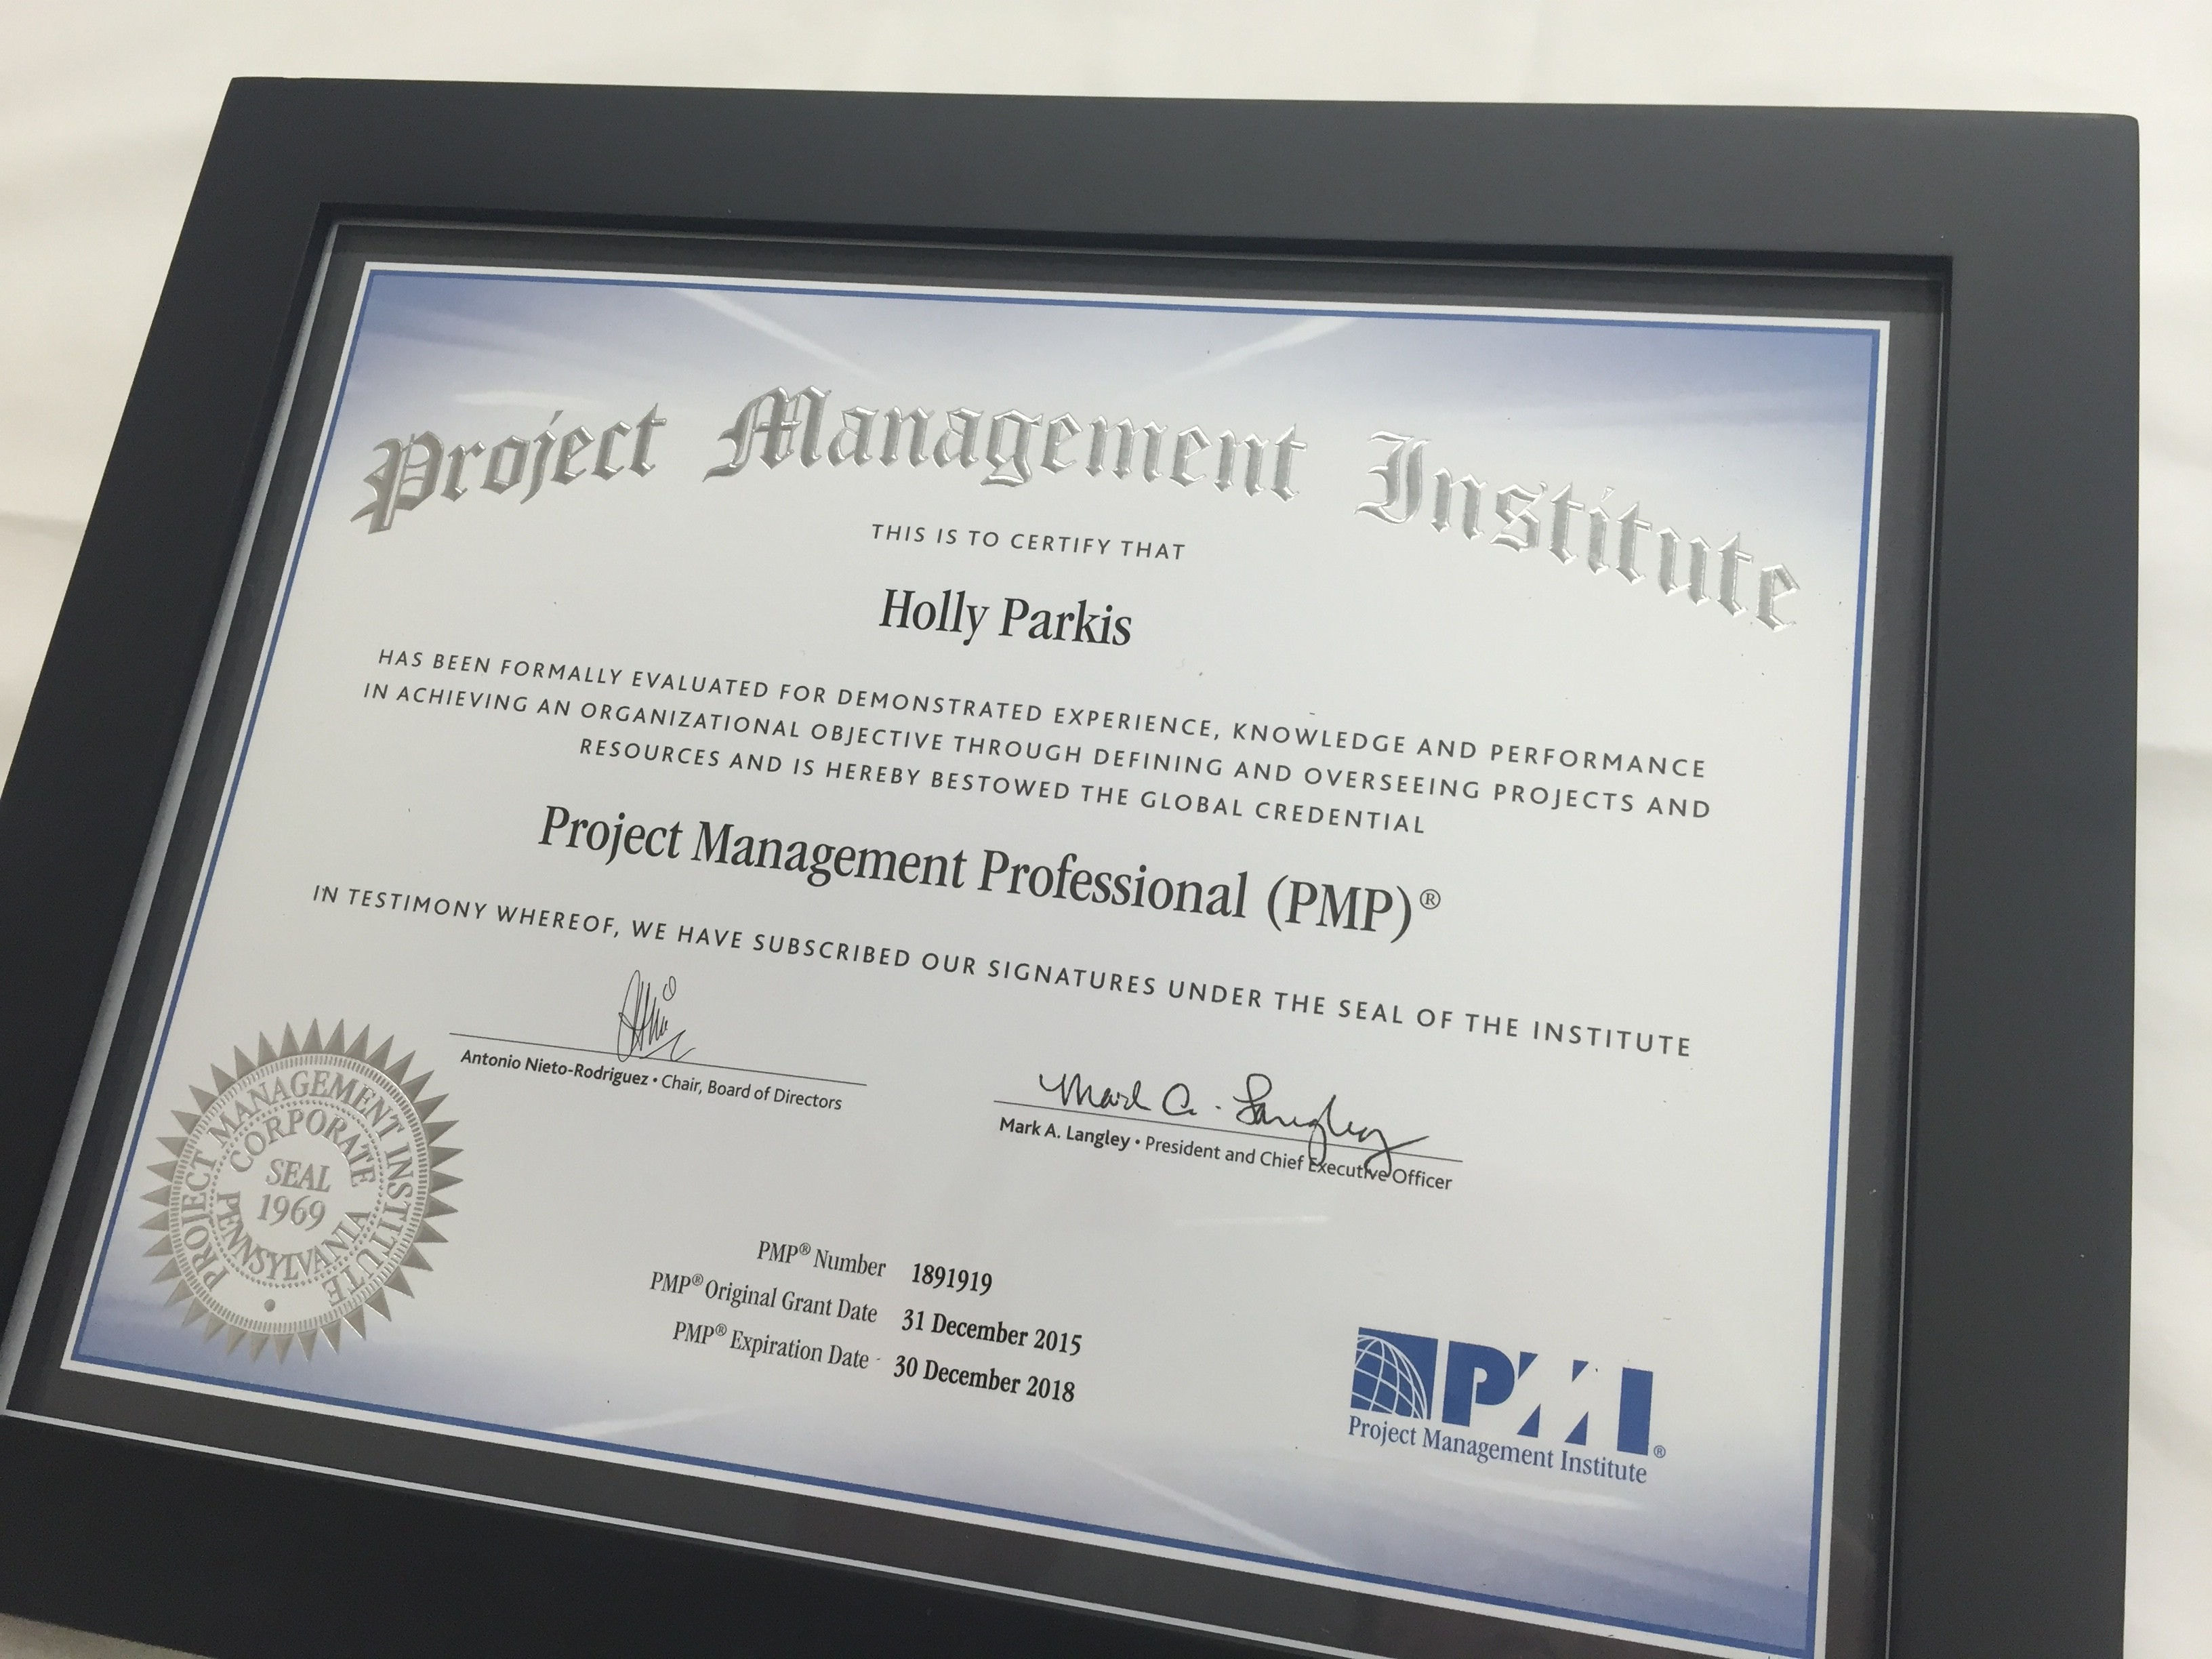 Congratulations to Holly Parkis on her PMP